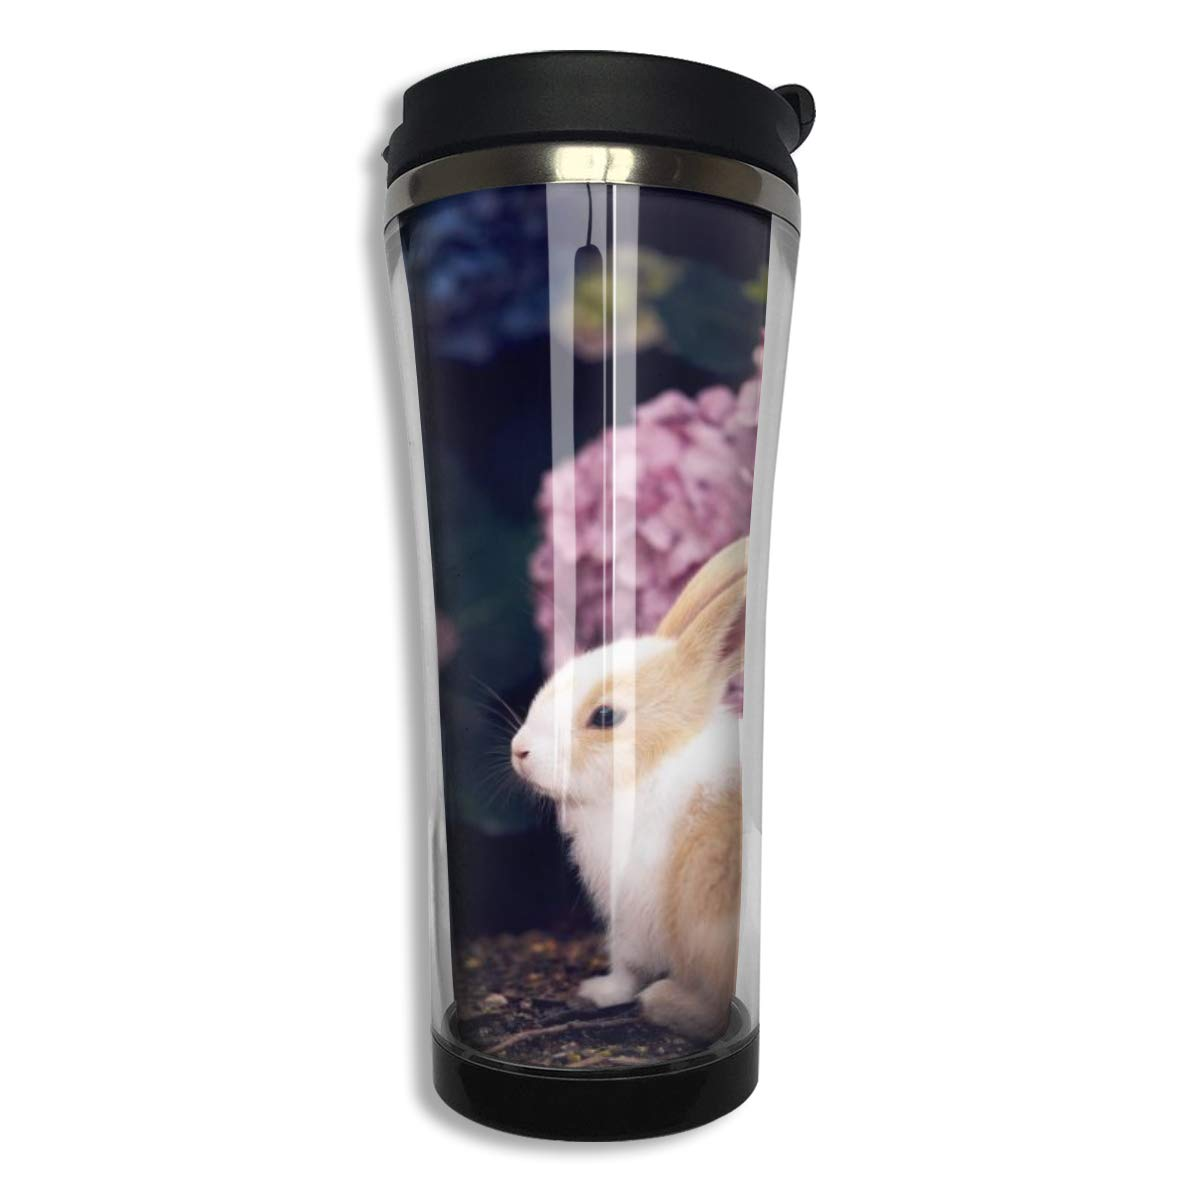 NiYoung Stainless Steel Thermal Water Coffee Cup for Cold & Hot Drinks, Rabbit Hydrangea Travel Mug Double Wall Vacuum Insulated Tumbler with Leak Proof Lid